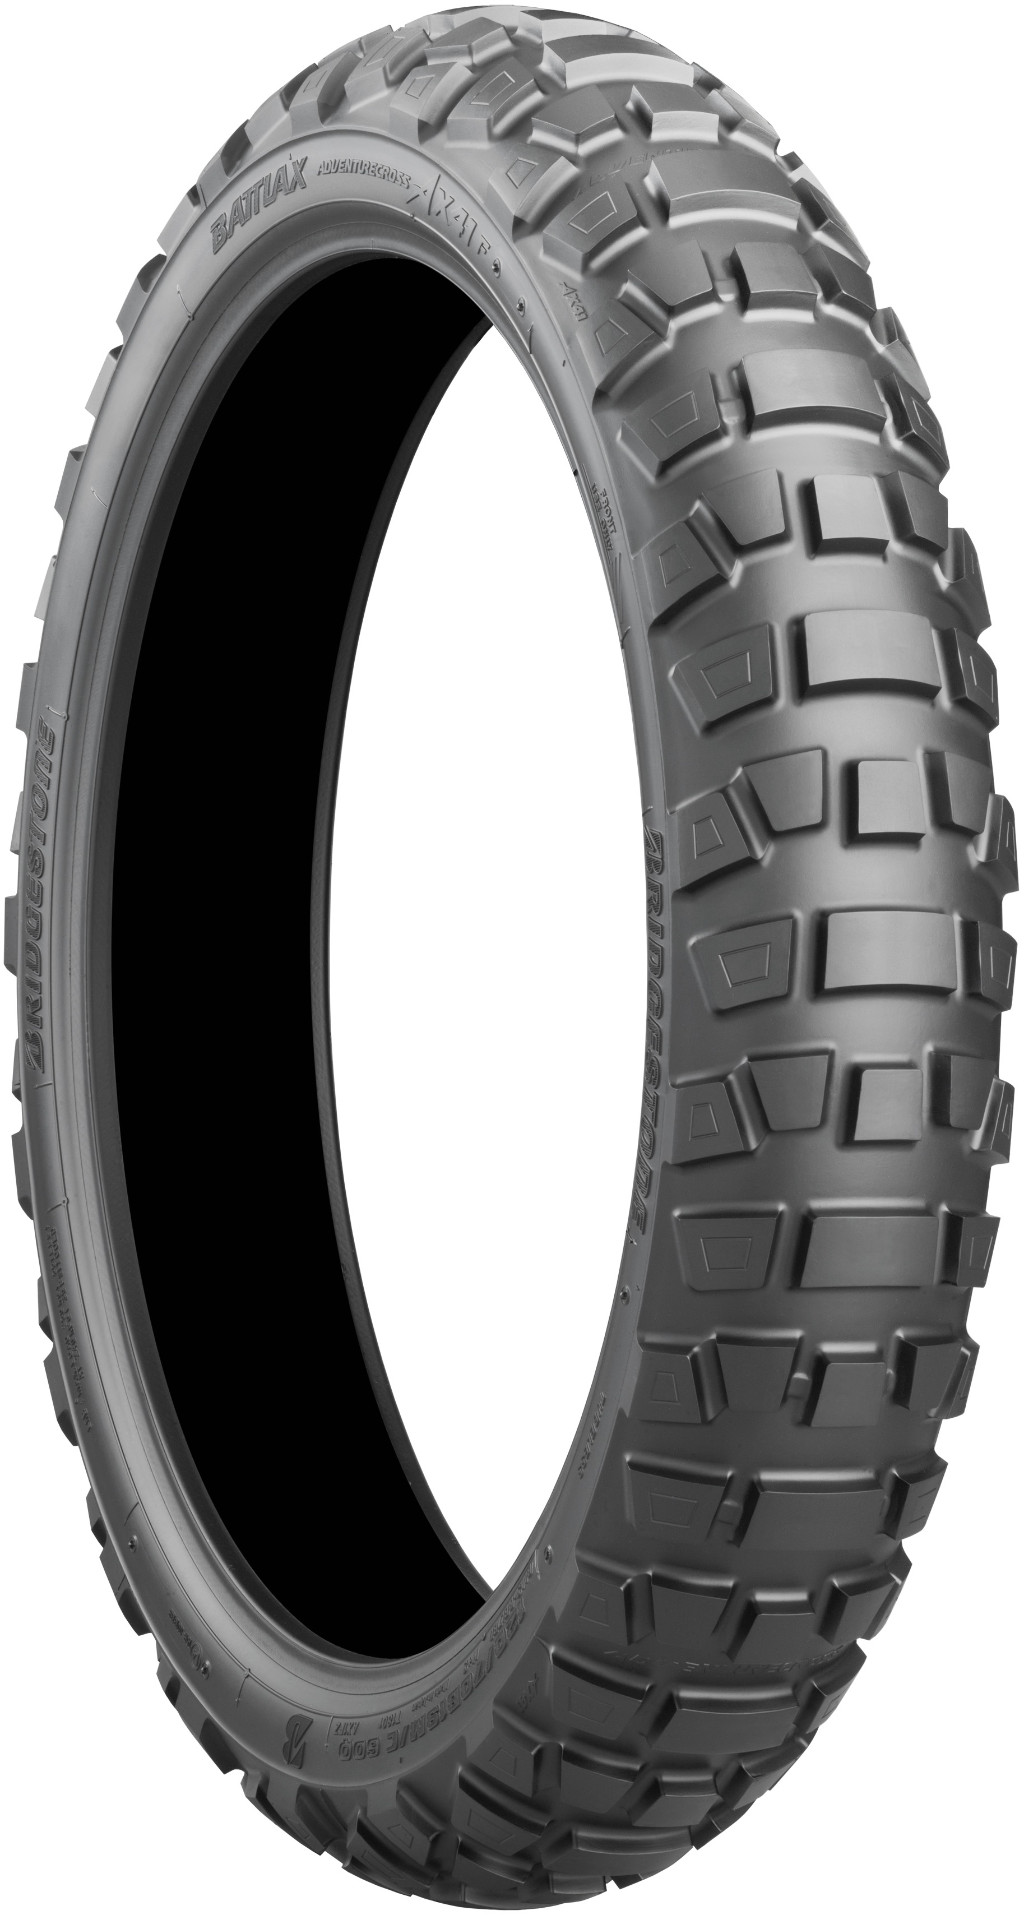 BRIDGESTONE ADVENTURECROSS BATTLAX AX41 [120/70В 19М/С 60Q] BATTLAX Adventur